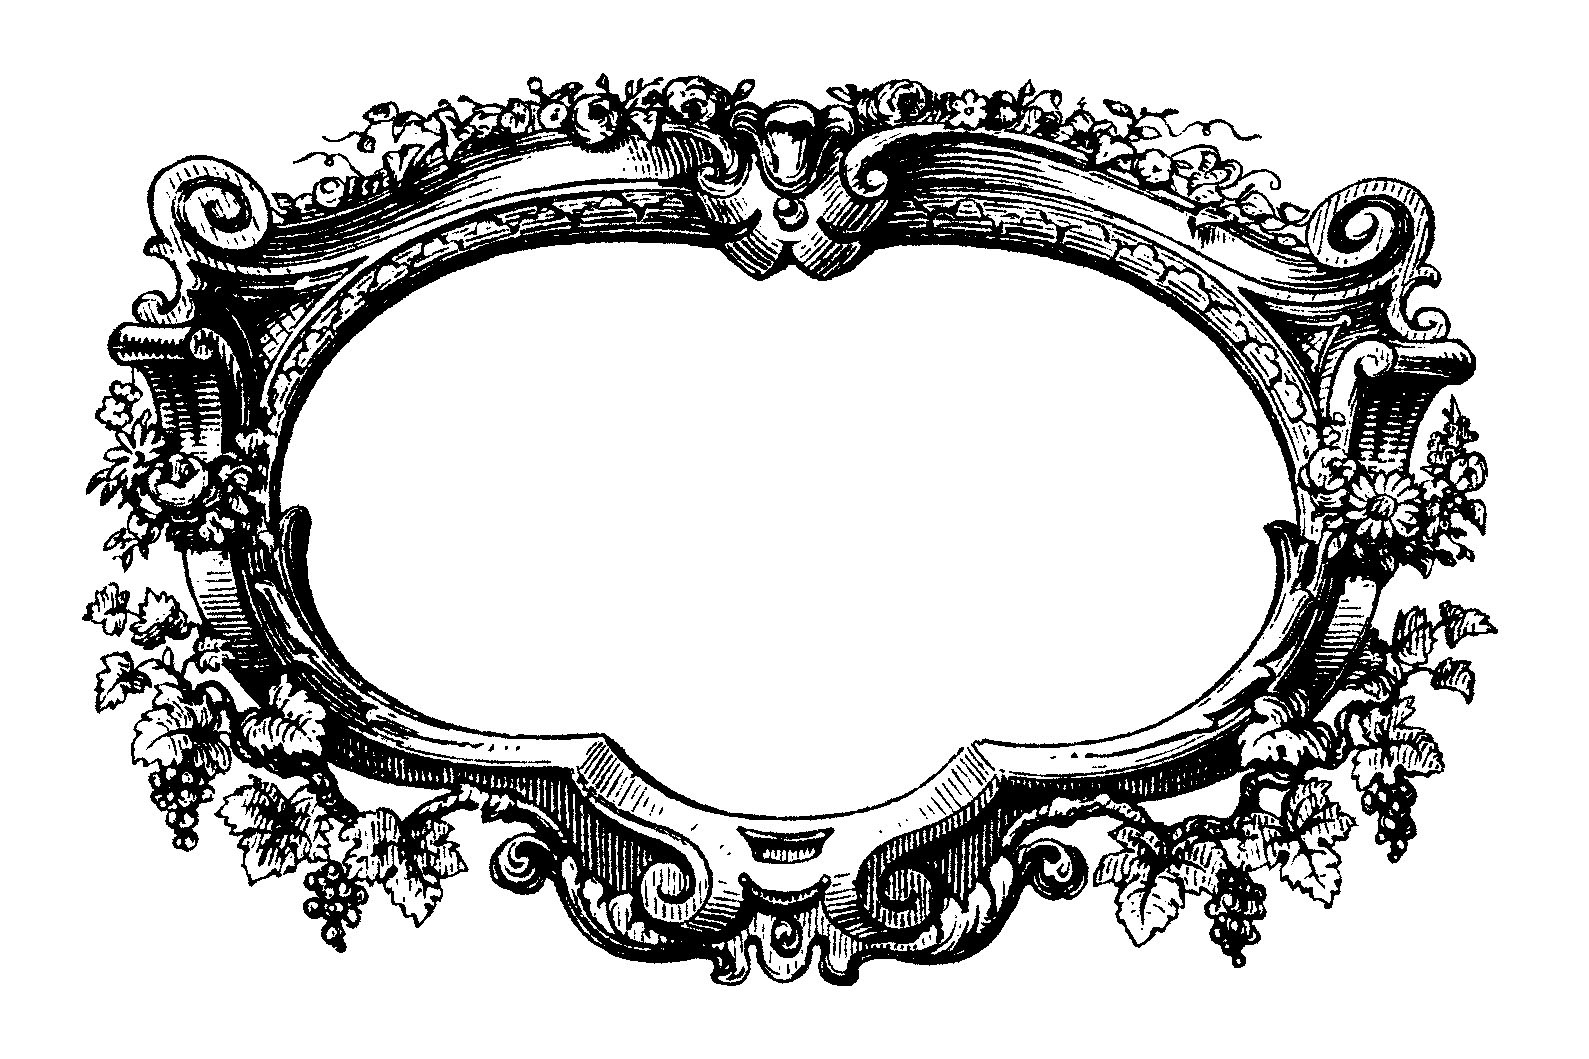 Free Filigree Frame Cliparts, Download Free Clip Art, Free Clip Art.